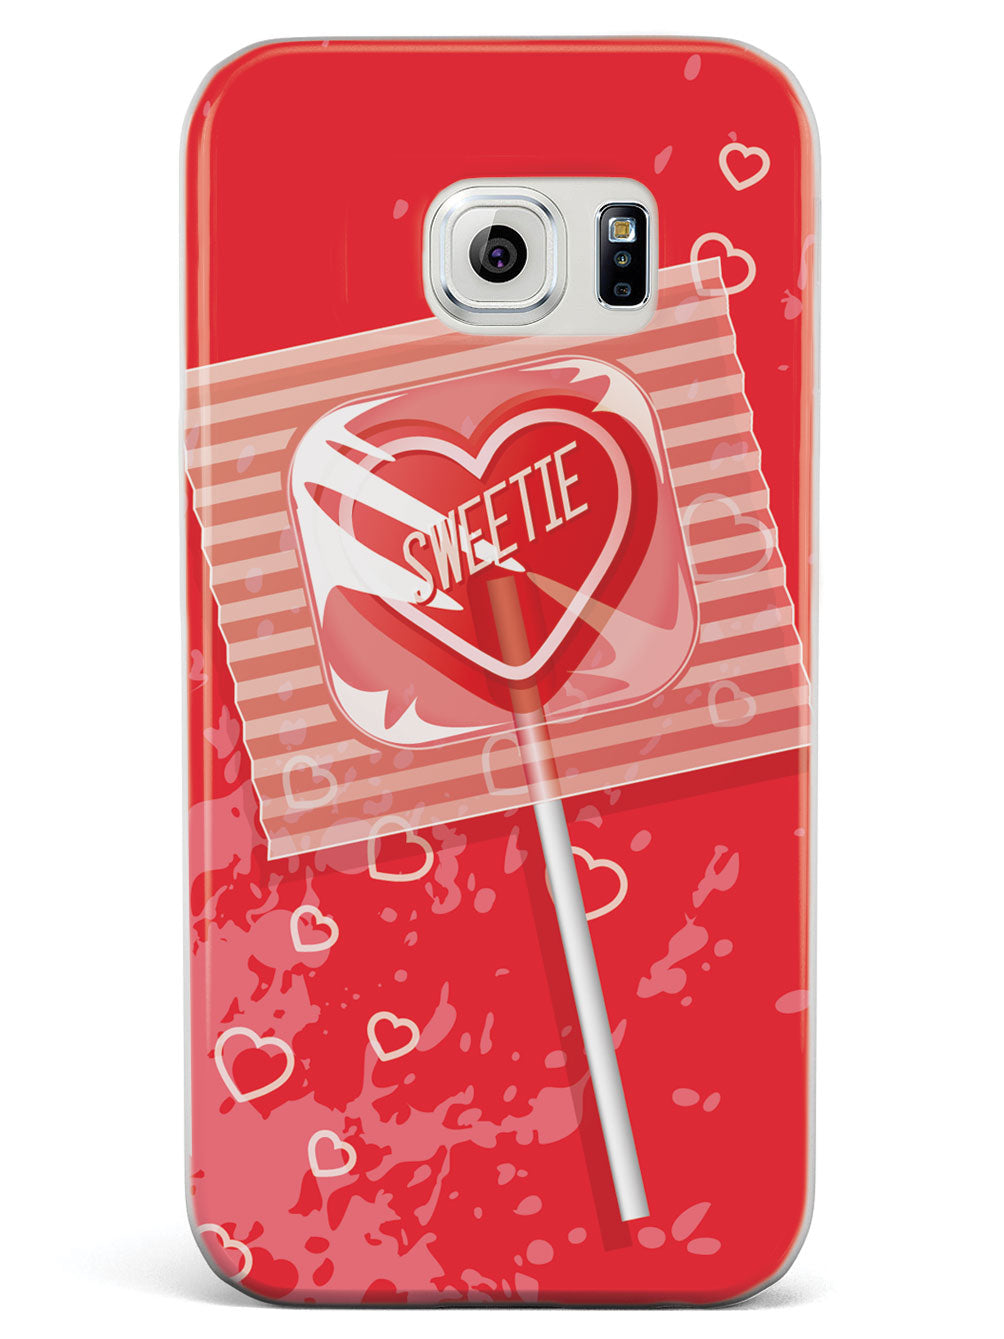 Sweetie Heart Lollipop - White Case